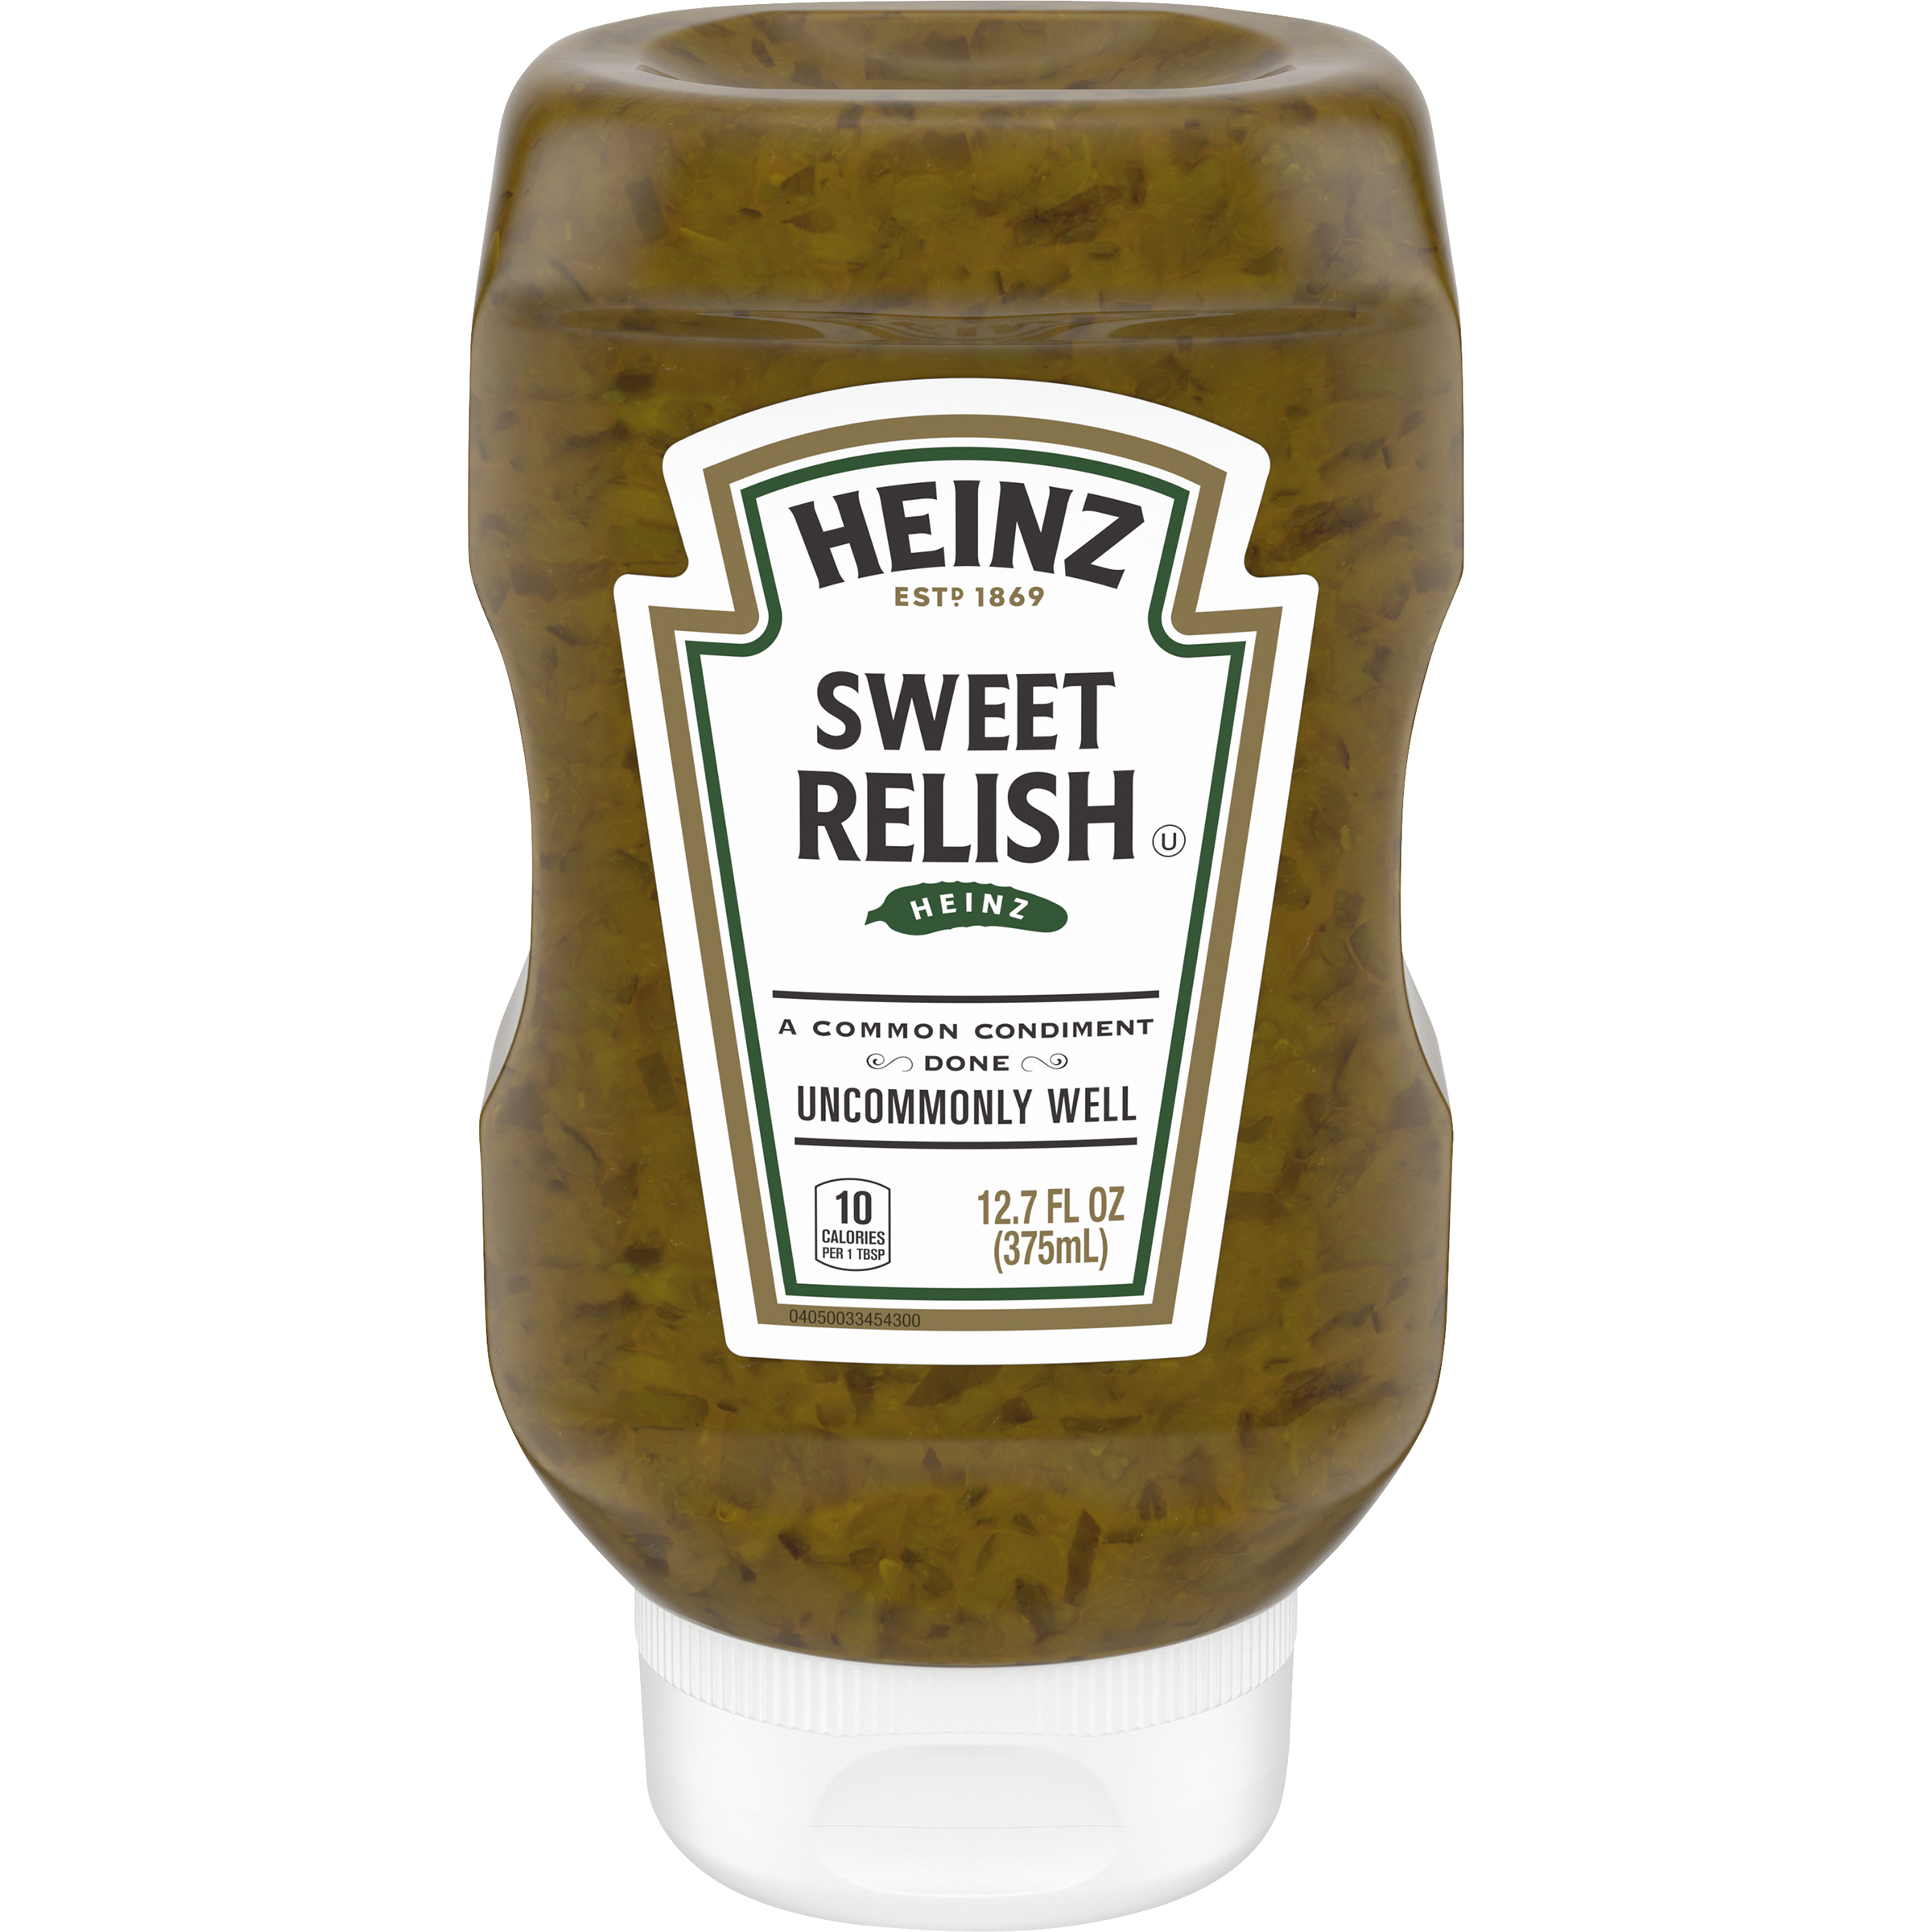 Heinz Sweet Relish 12.7 fl oz Bottle image